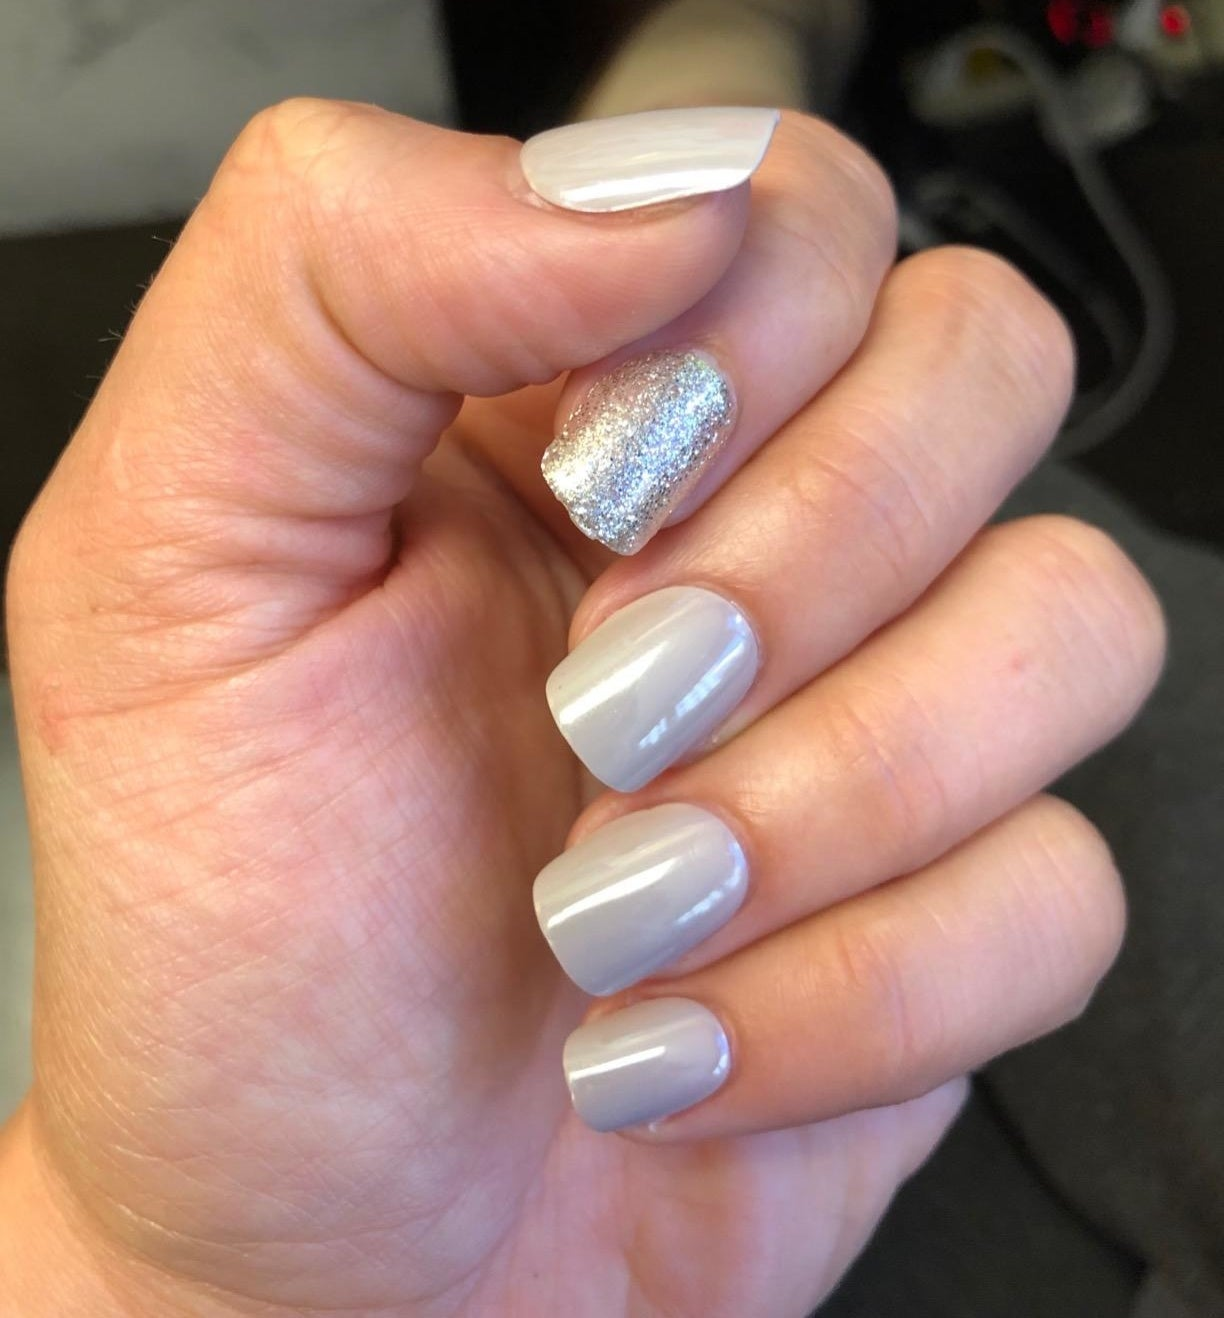 Reviewer with press-on nails